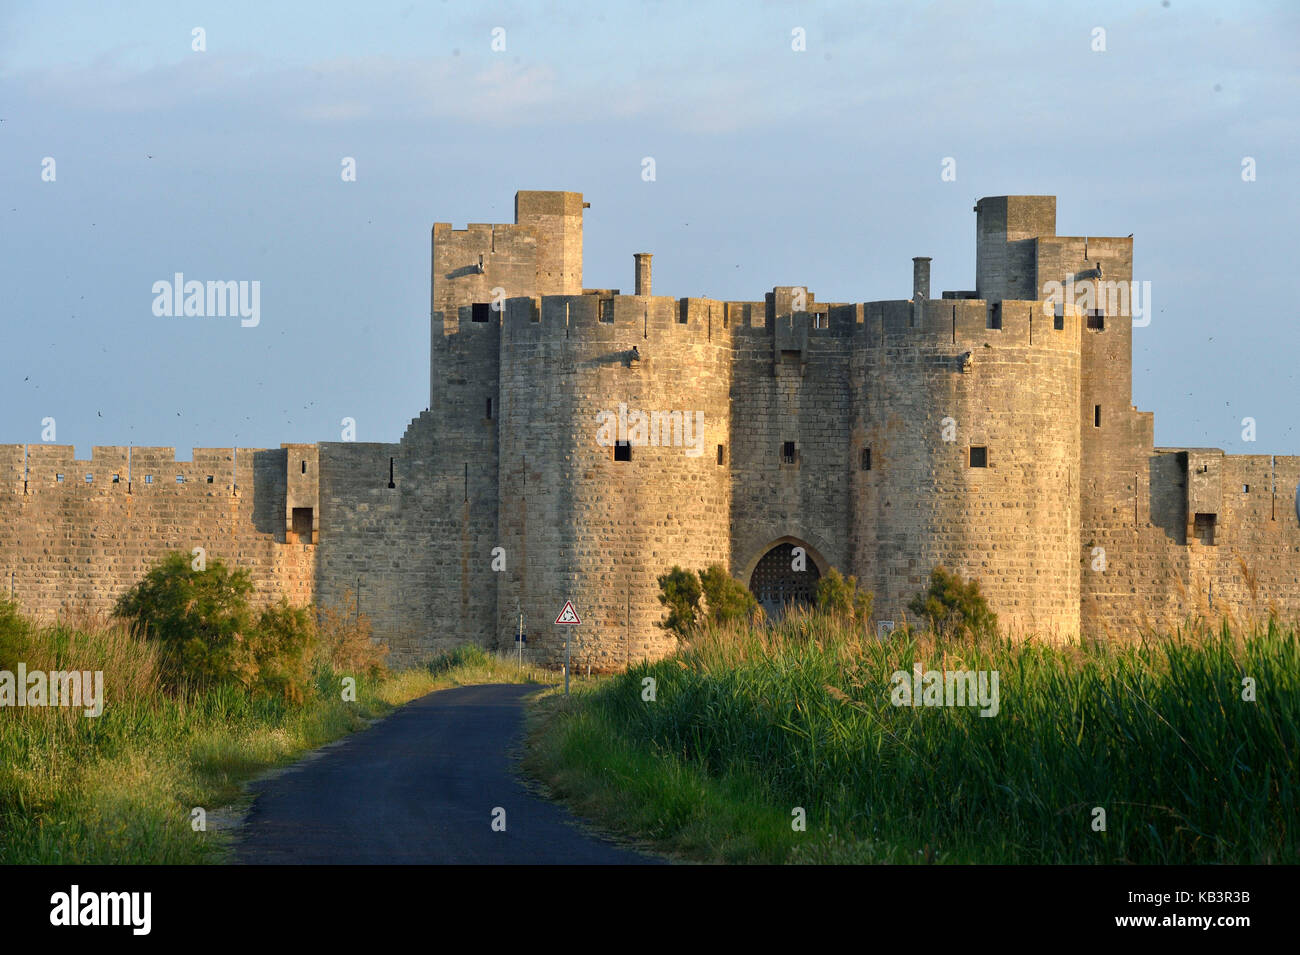 France, Gard, Aigues-Mortes, medieval city, ramparts and fortifications surrounded the city, fortified gate - Stock Image